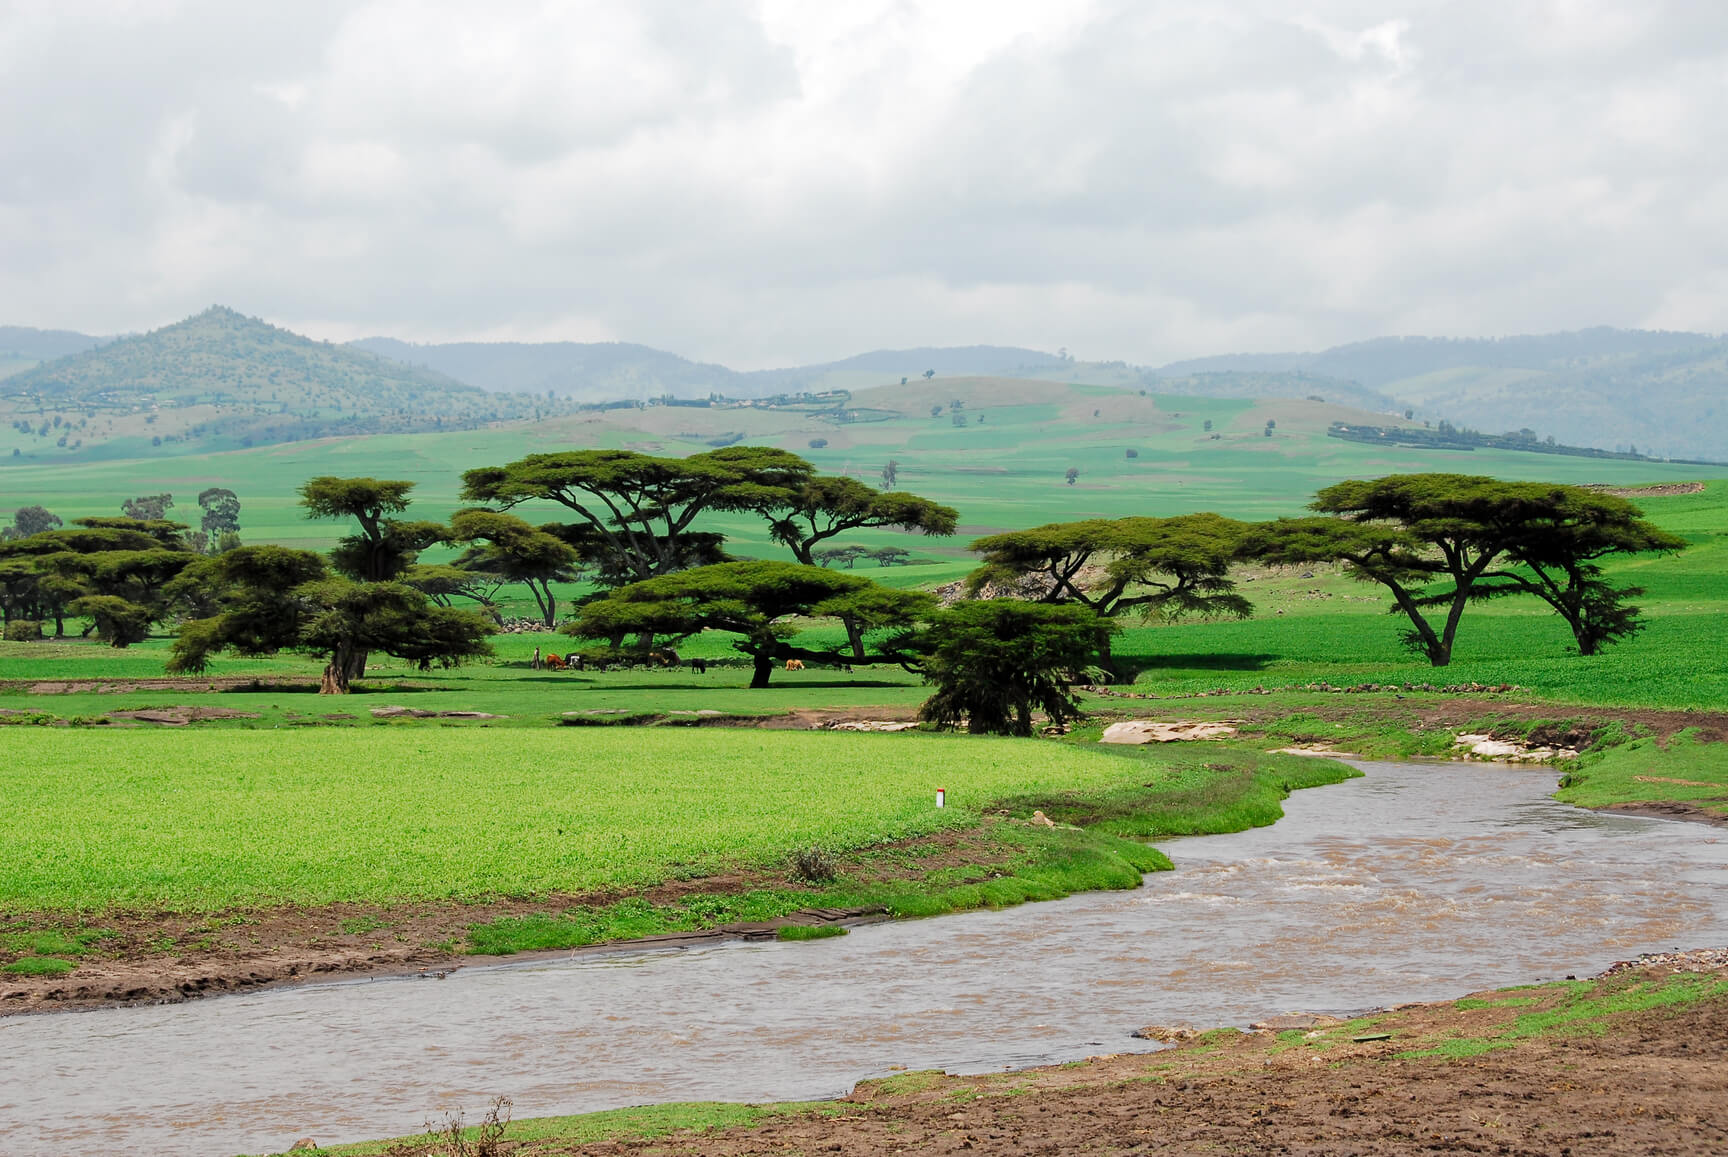 UK cities to Addis Ababa, Ethiopia from only £349 roundtrip